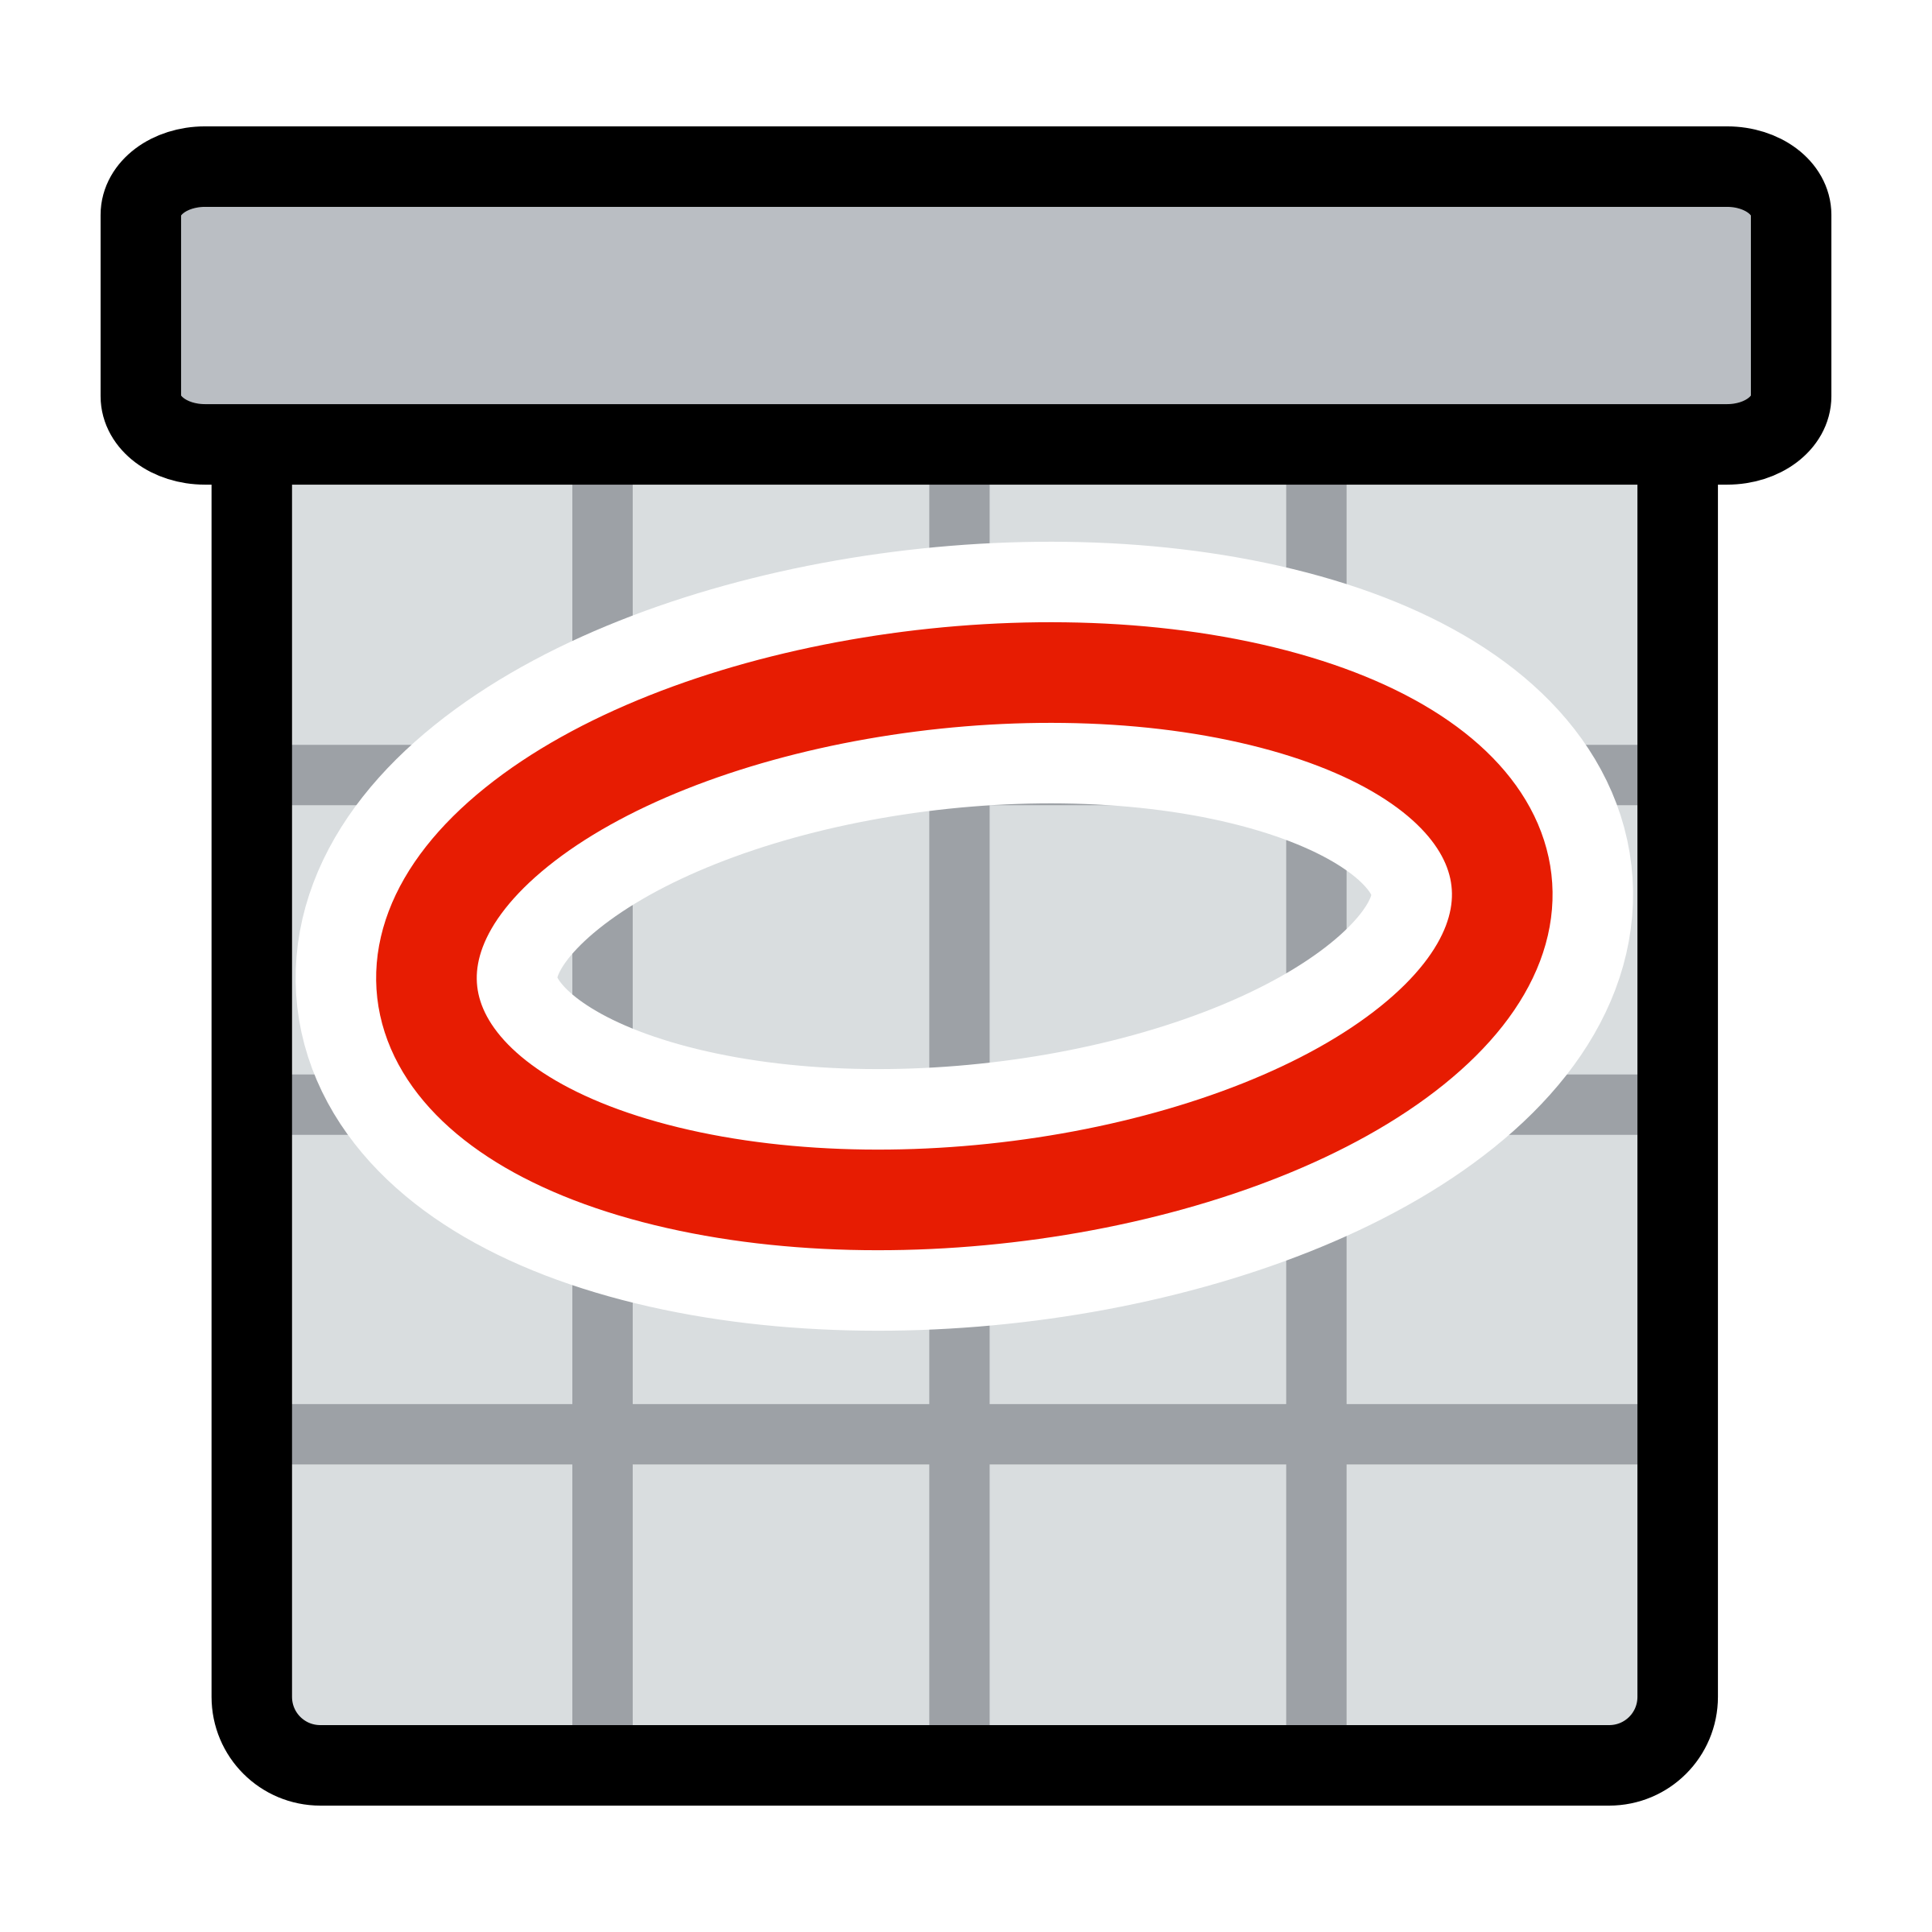 clipart library Schedule clipart. Primary big image png.